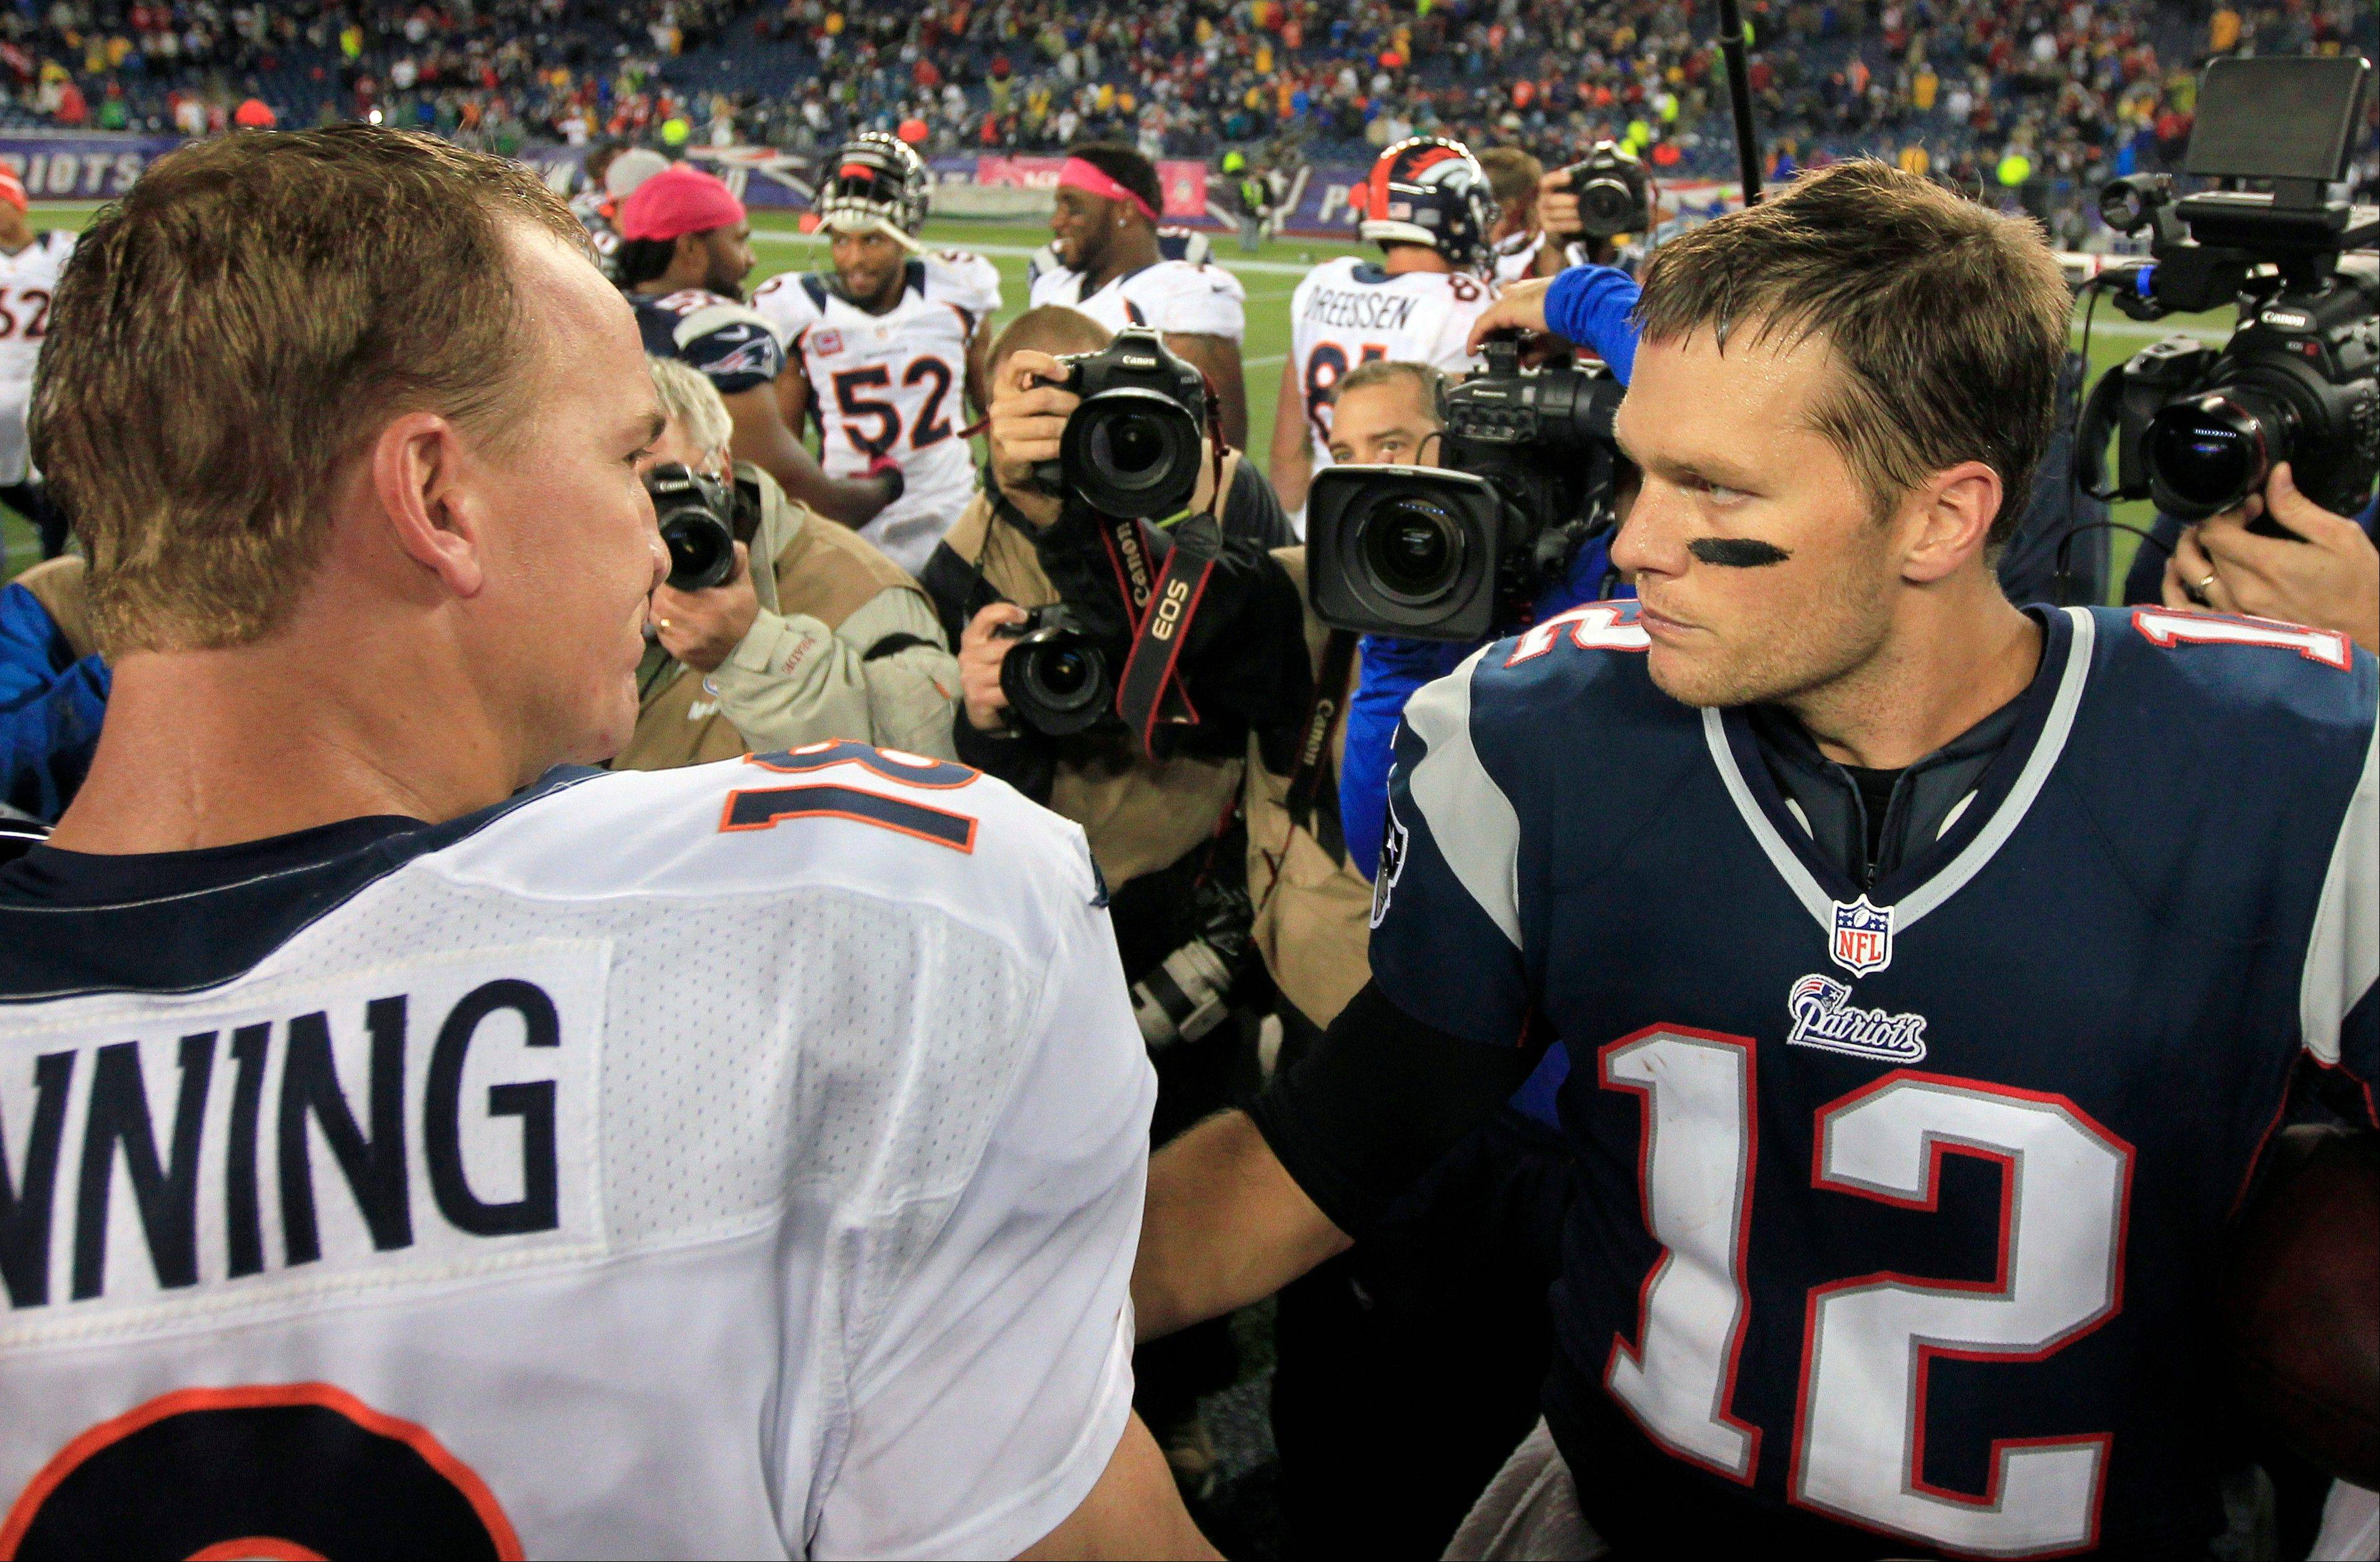 FILE - In this Oct. 7, 2012, file photo, Denver Broncos quarterback Peyton Manning, left, and New England Patriots quarterback Tom Brady, right, speak in the middle of the field after the Patriots beat the Broncos 31-21 in an NFL football game in Foxborough, Mass. The Patriots are scheduled to play the Broncos in the AFC championship game on Sunday in Denver.